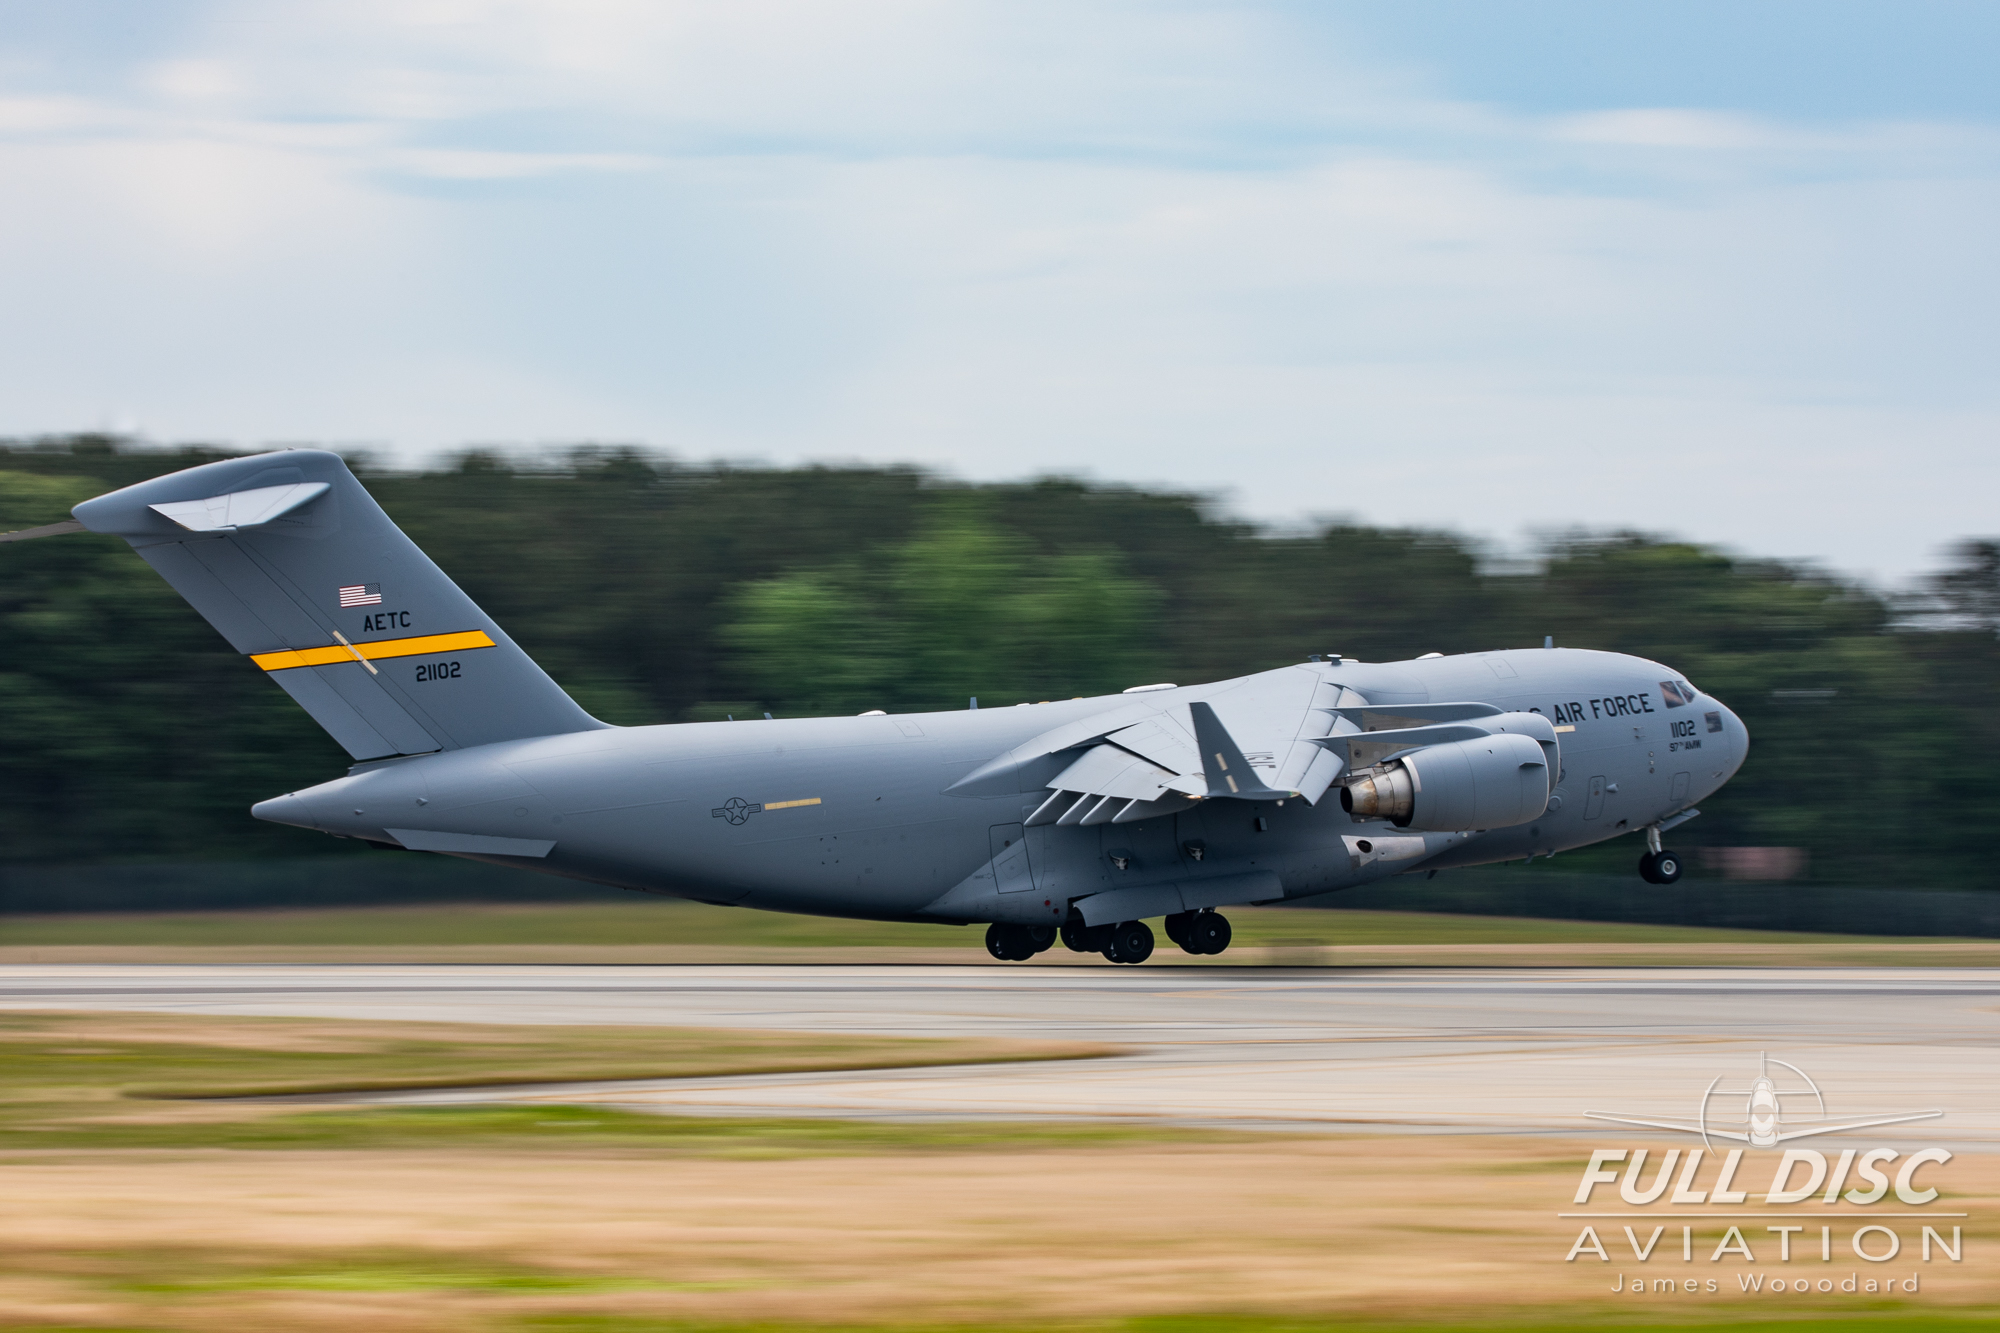 WingsOverWayne_FullDiscAviation_JamesWoodard-April 28, 2019-21.jpg